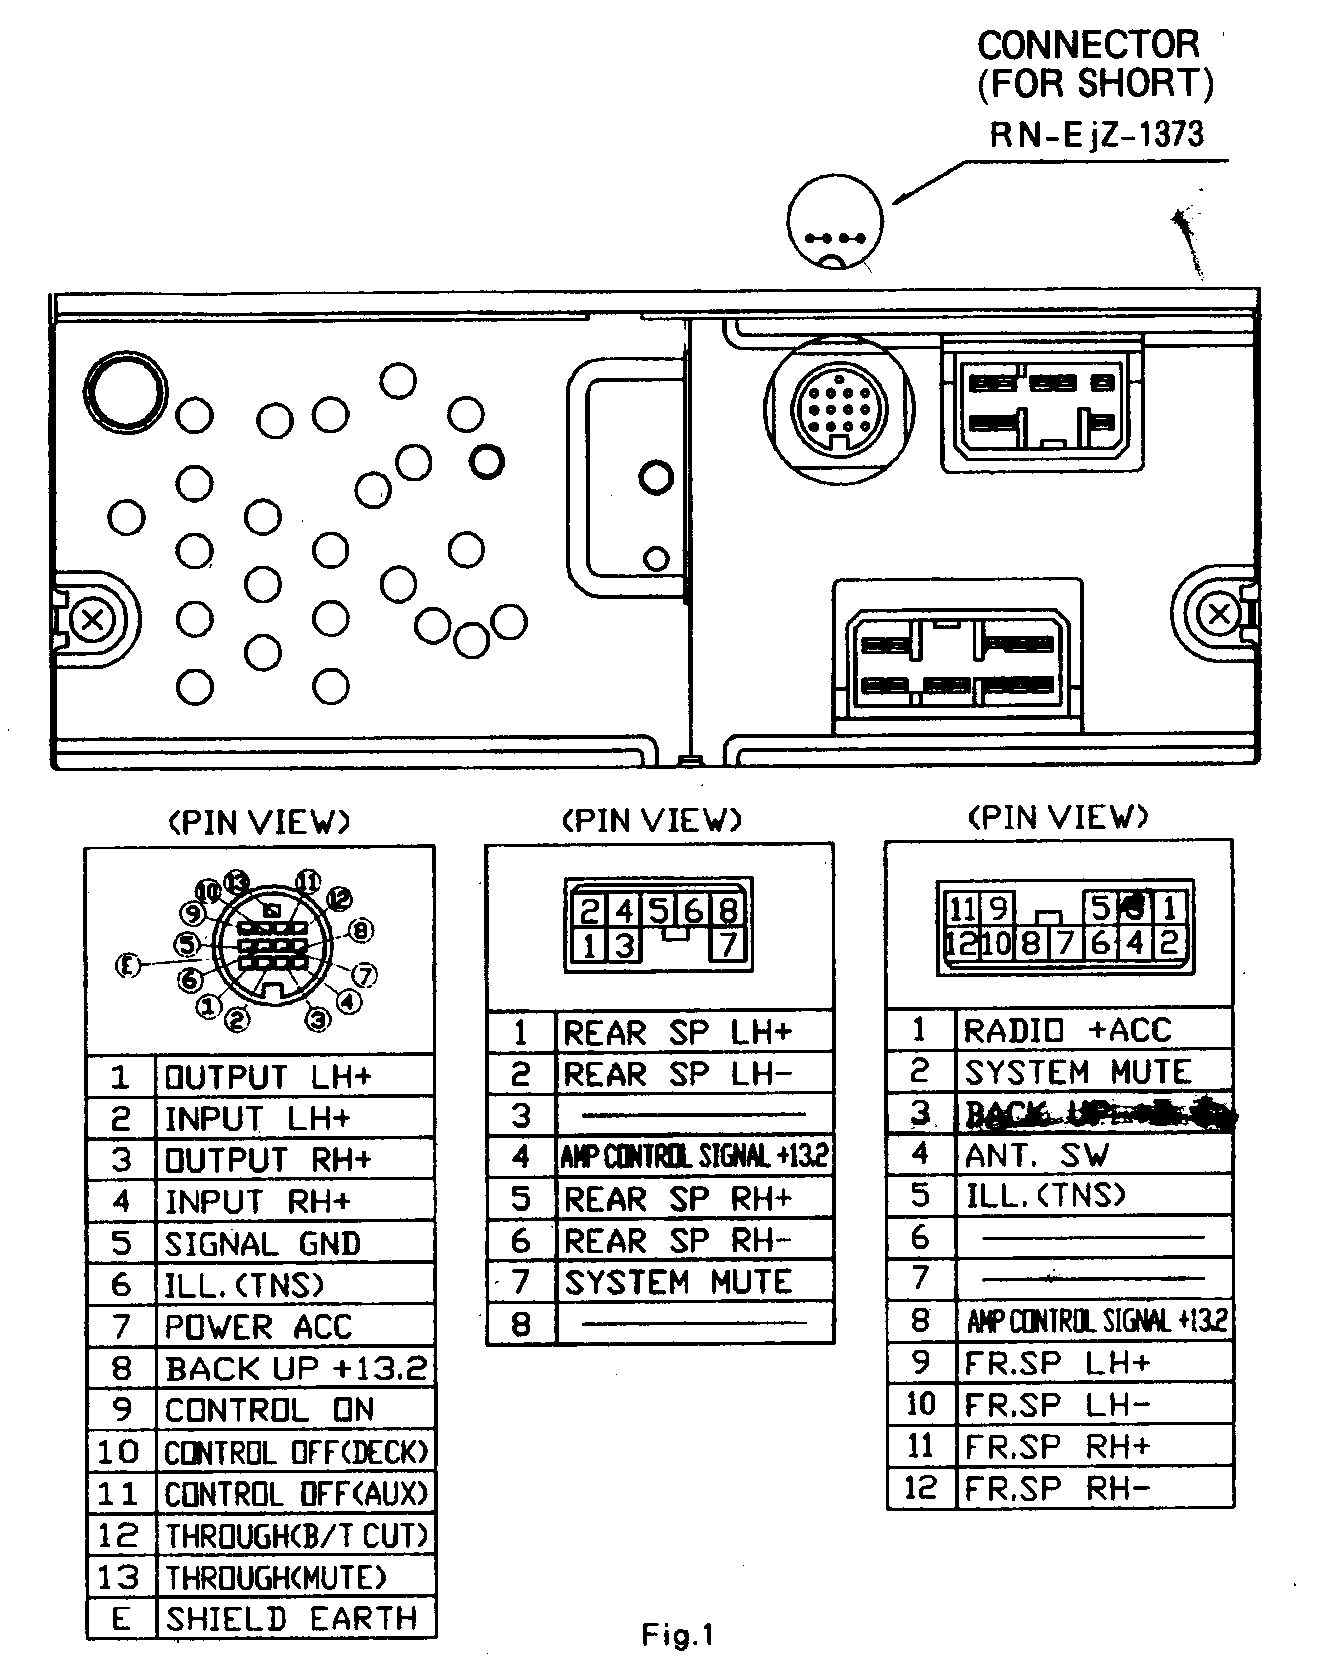 Genuine Gm Parts Diagrams also 2013 Chevy Tahoe Airbag Module Location besides 2005 2013 Corvette Gm Techlink Article No Fob Detected Message 9 likewise Chevy Aveo Rear Brake Diagrams besides 3vzgl 2003 Gmc Savana Instrument Cluster Illumination Lights. on 2008 cadillac cts fuse box diagram